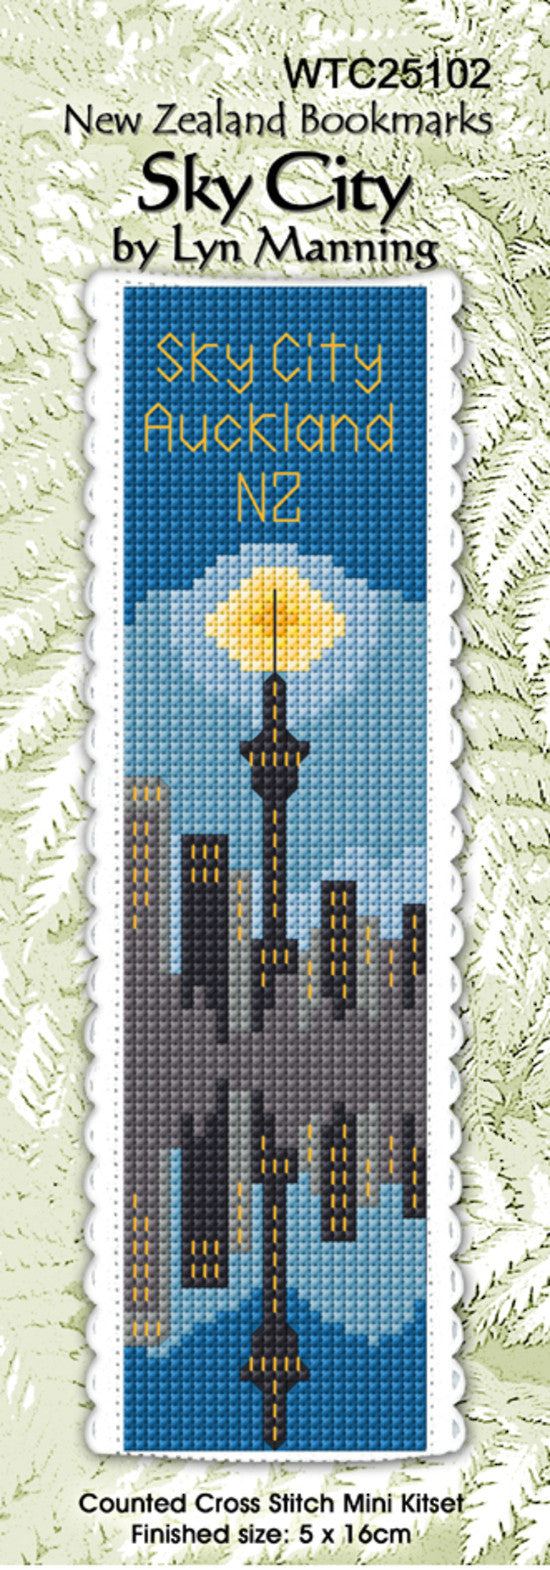 Cross-stitch bookmark - Auckland's Sky City at night